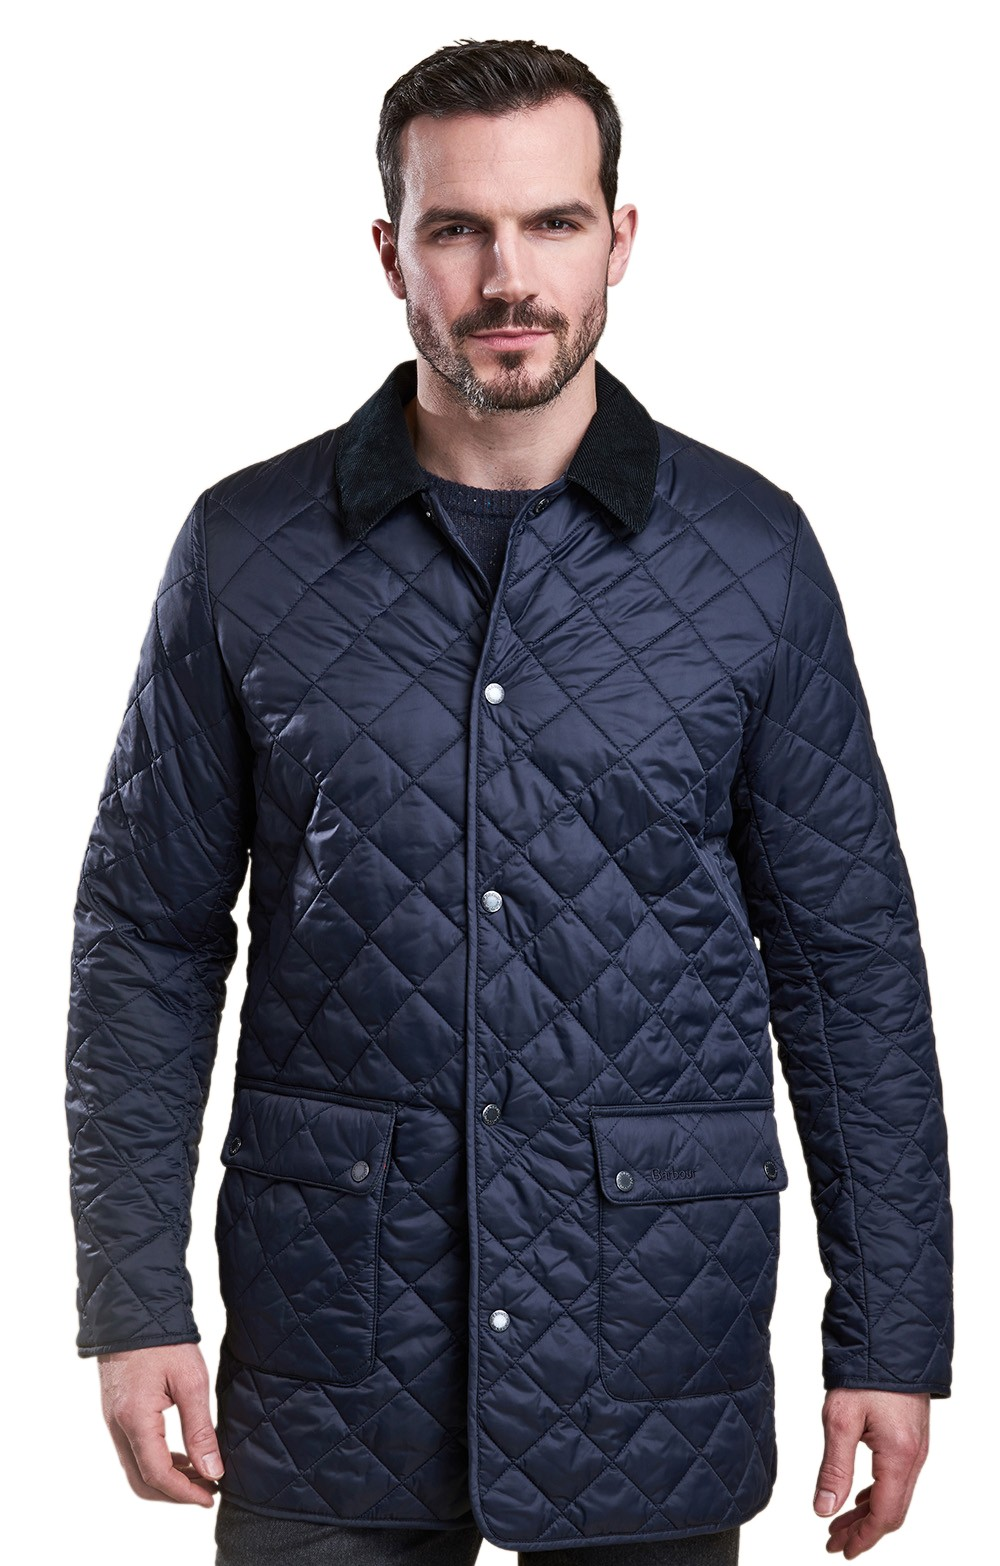 mens barbour drill jacket coat image quilted navy heritage quilt blue